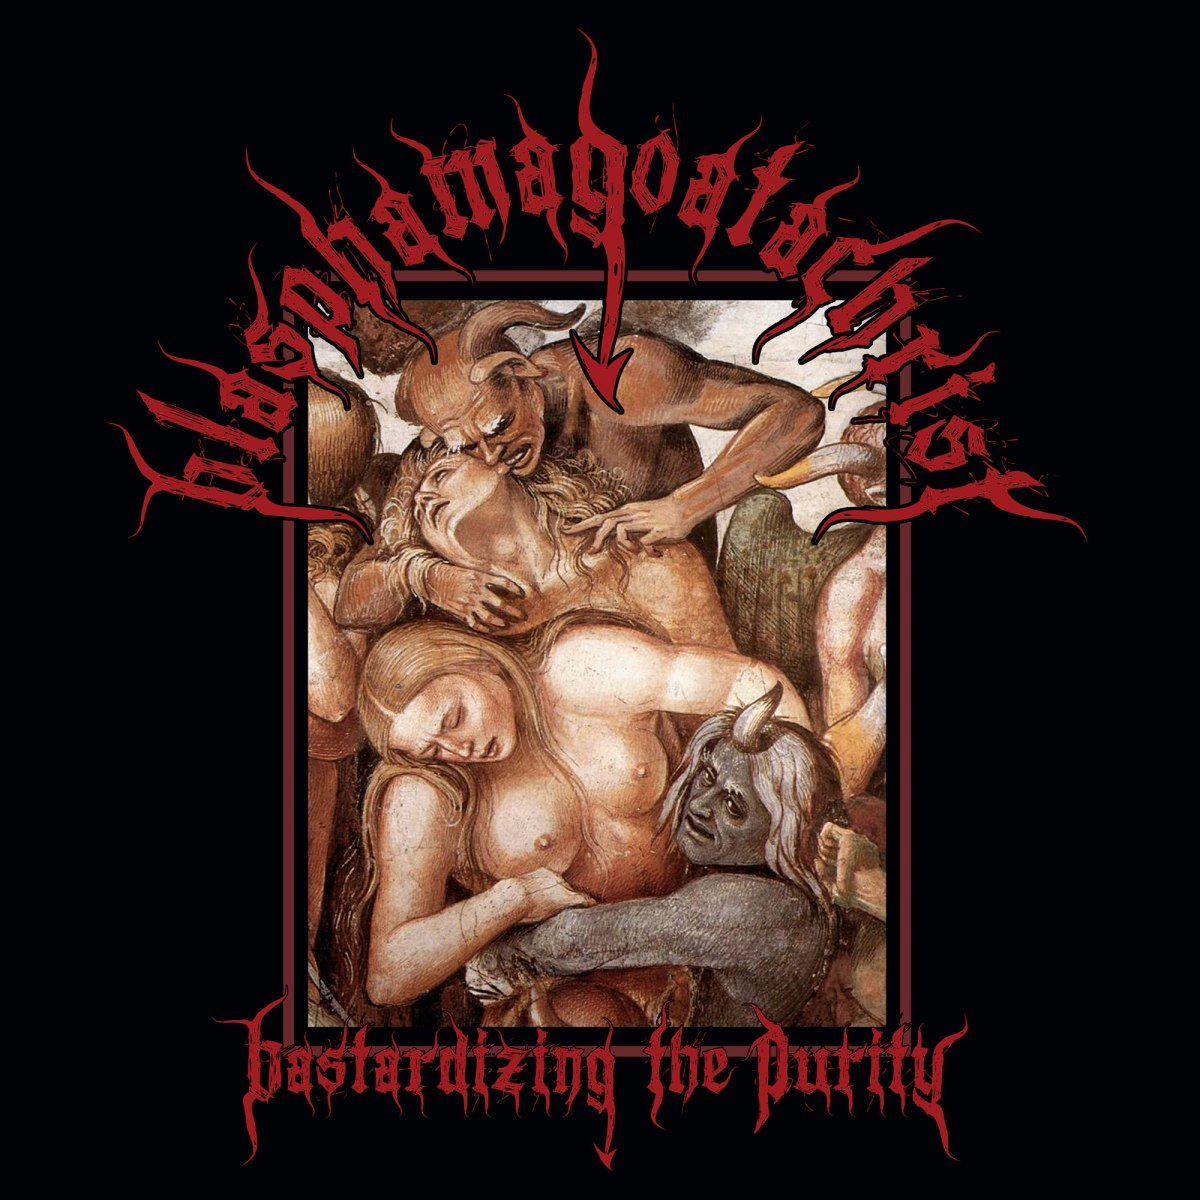 Blasphamagoatachrist⛧Bastardizing The Purity | exposé/review